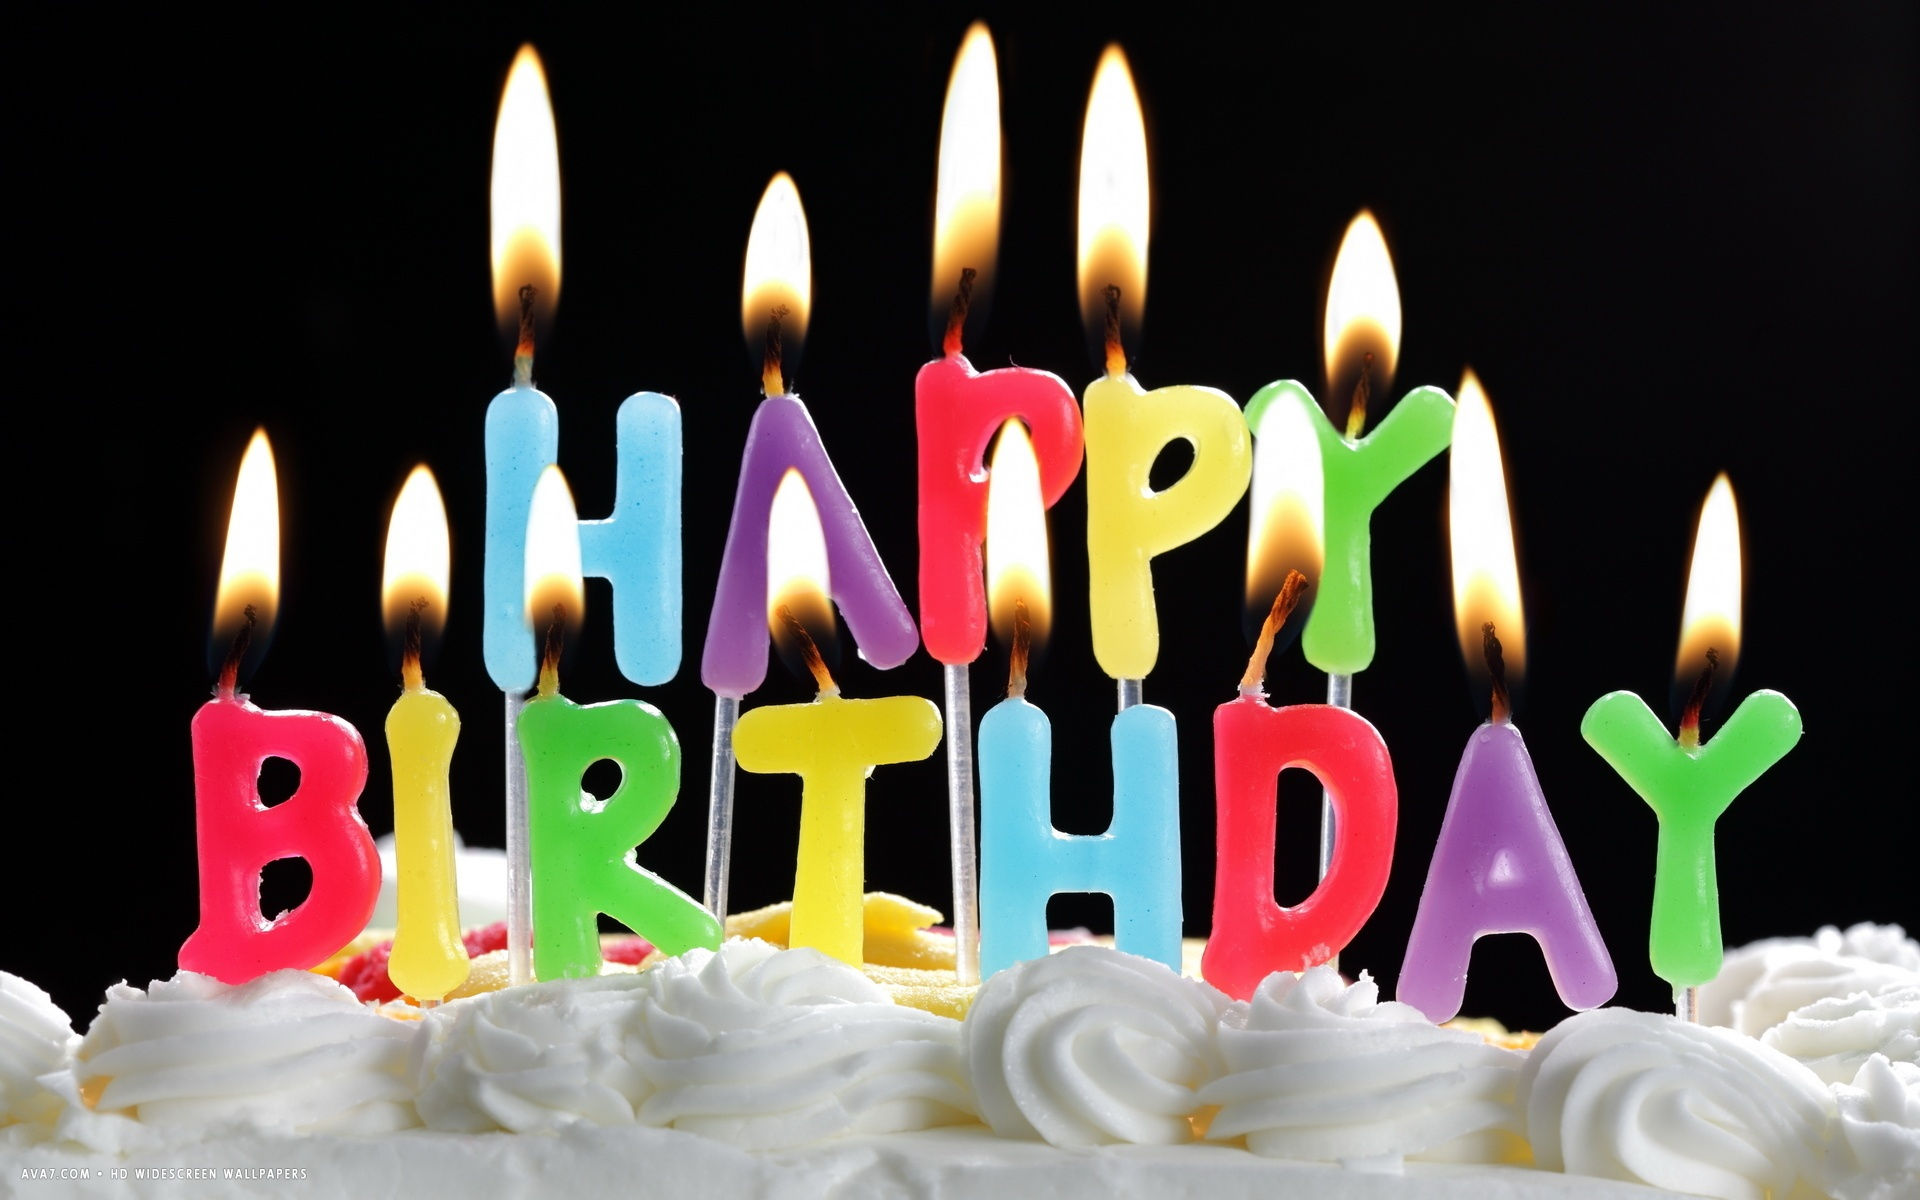 Happy Birthday Colorful Letter Candles White Cake Hd Widescreen Wallpaper